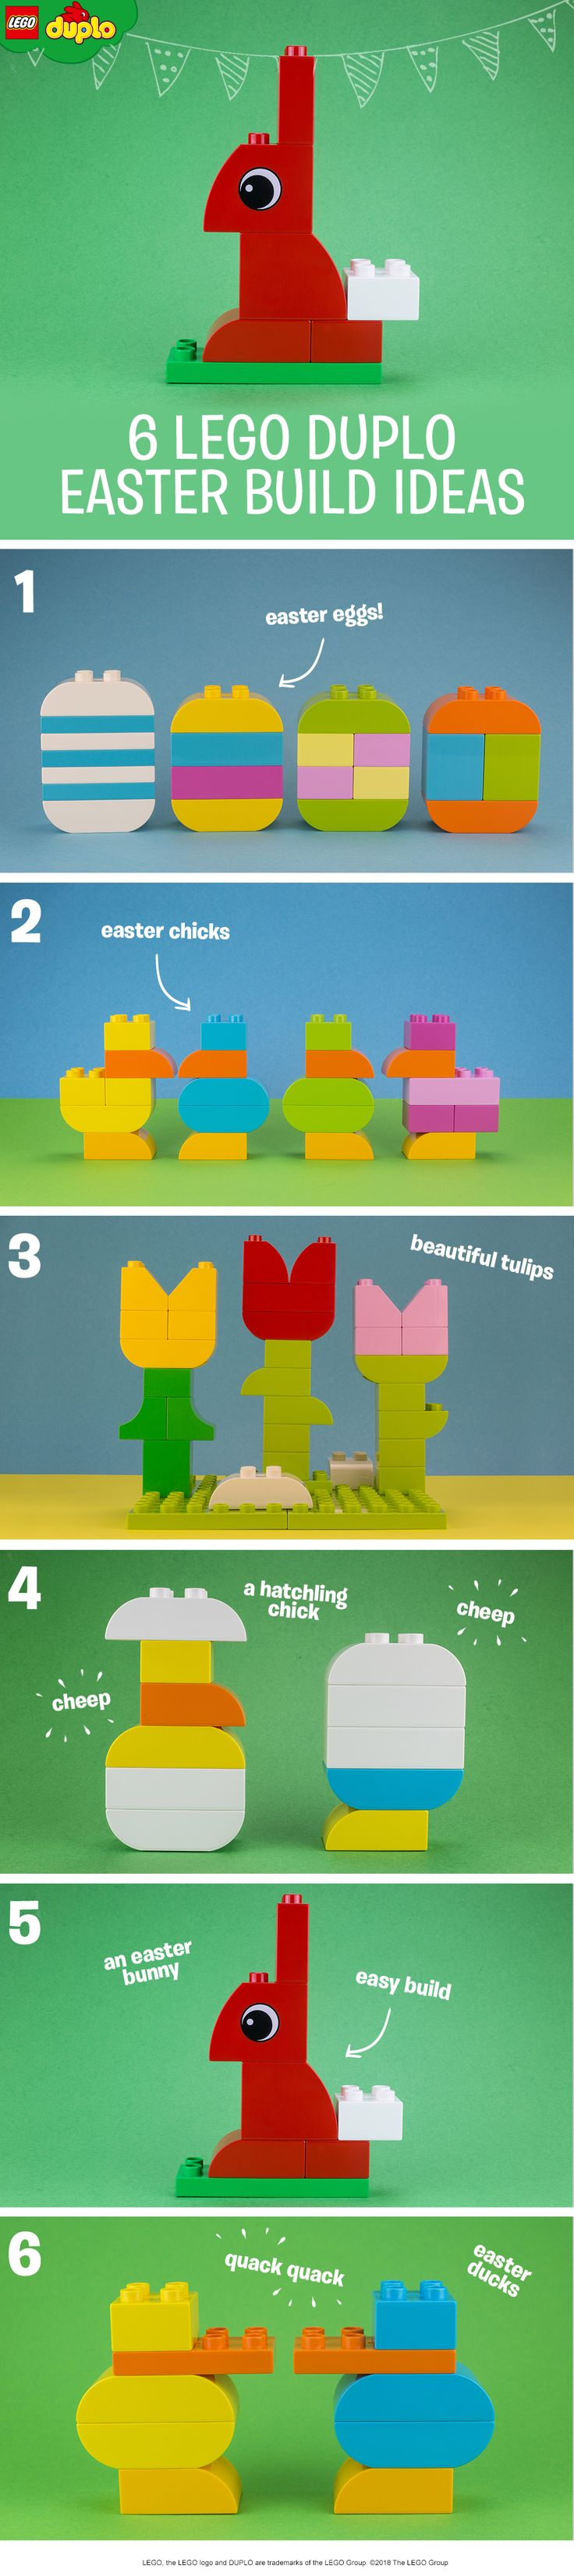 Get ready for Easter! Here are some kid-friendly DIY decoration ideas – all made from colorful LEGO DUPLO bricks. Build a bunny, some chicks, a bunch of tulips, a set of colorful Easter eggs or even some little ducks!  Have fun with your kids by building these truly unique decorations for your home. If you need some more colorful